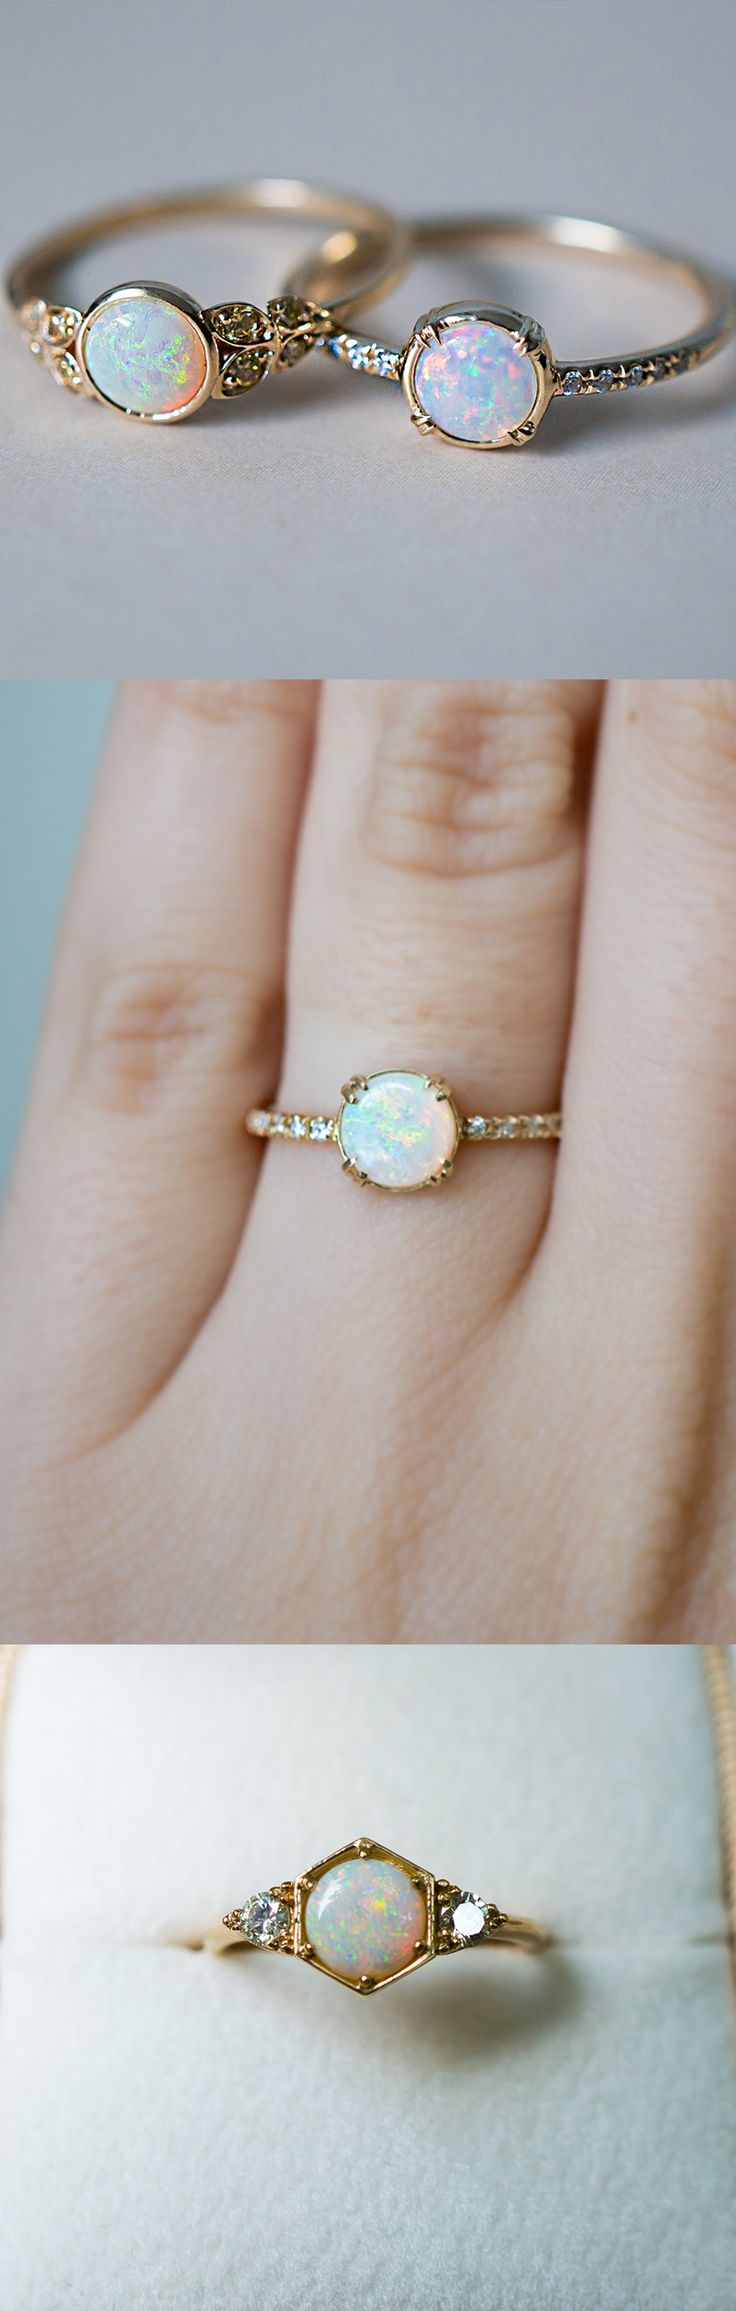 opal engagement rings opal wedding ring sets One of a kind Opal engagement rings inspired by vintage style Handcrafted by S